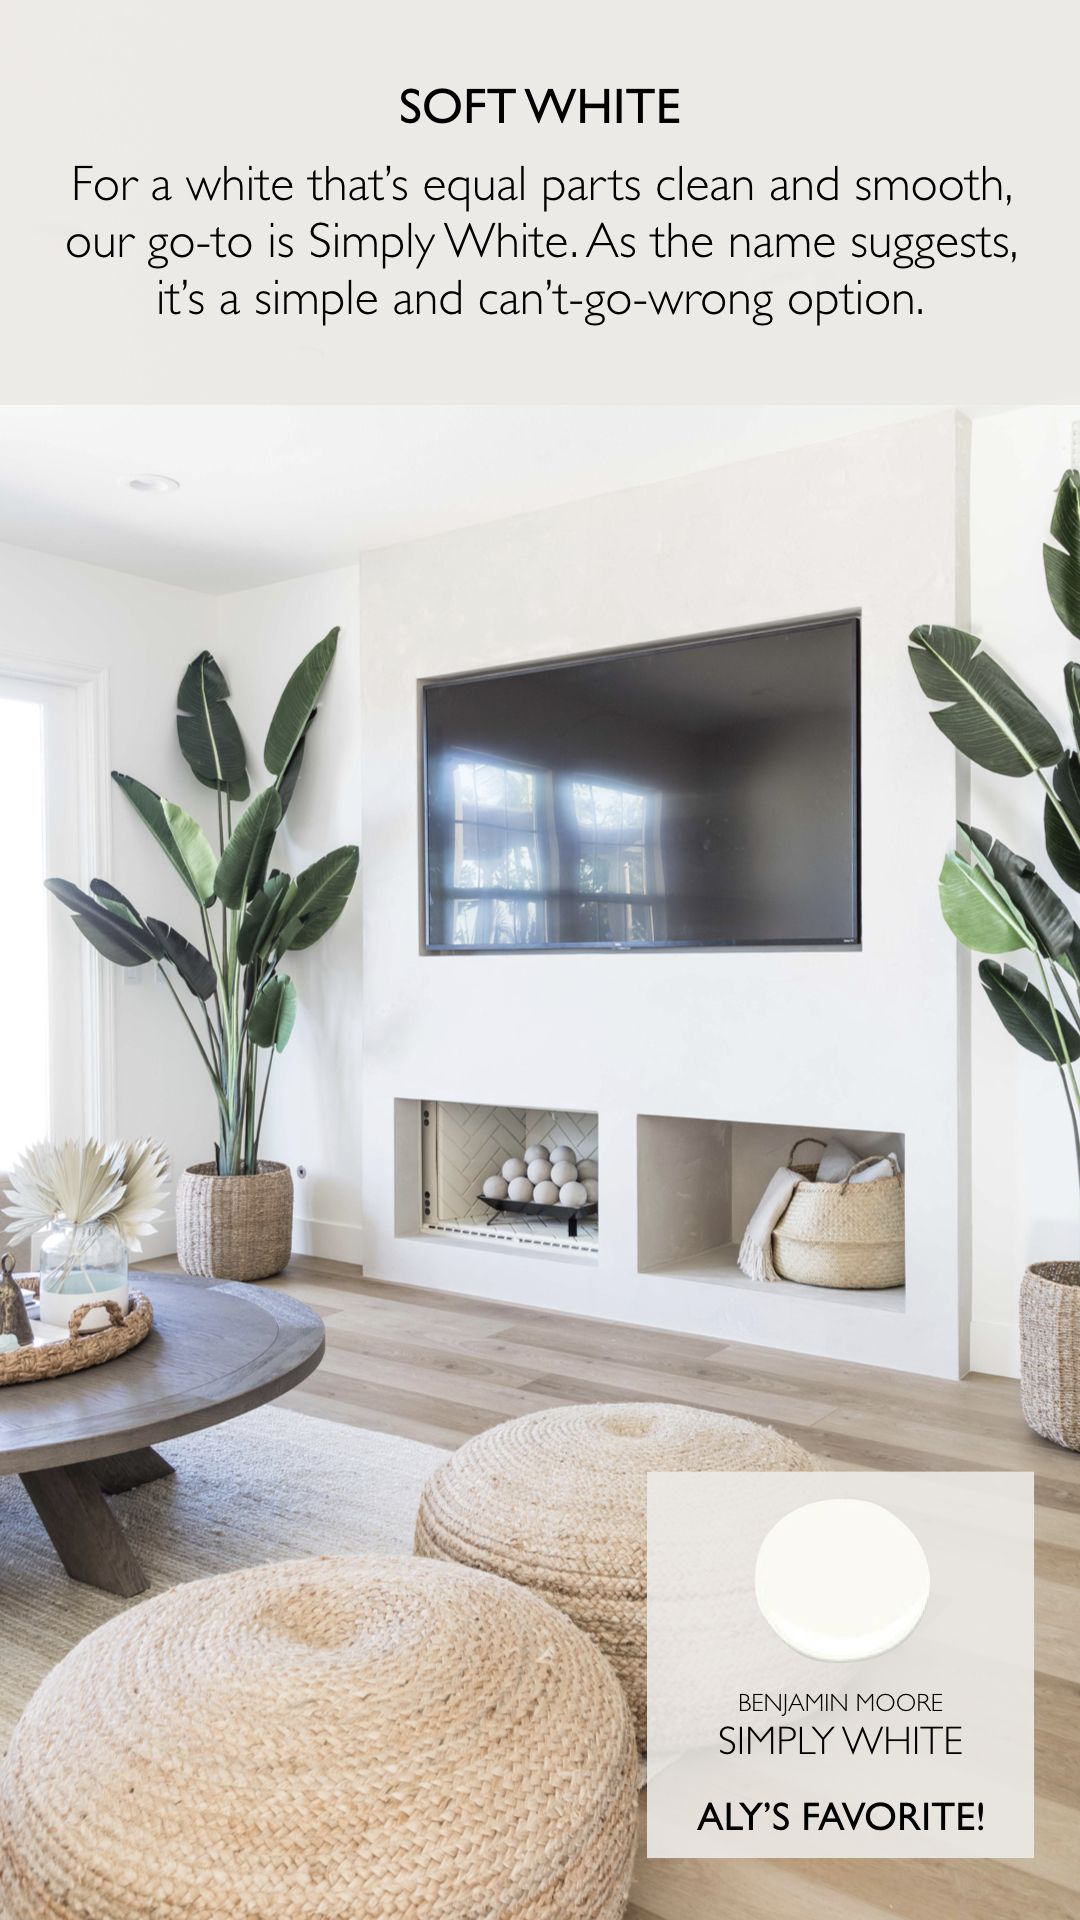 Selecting Whites | INTERIOR DESIGN TIPS AND TRICK | #DesignTips #InteriorDesign #InteriorDesignTips #Tips #DecorTips #DesignGuide #InteriorDesignGuide #HomeDecor #favoritewhites